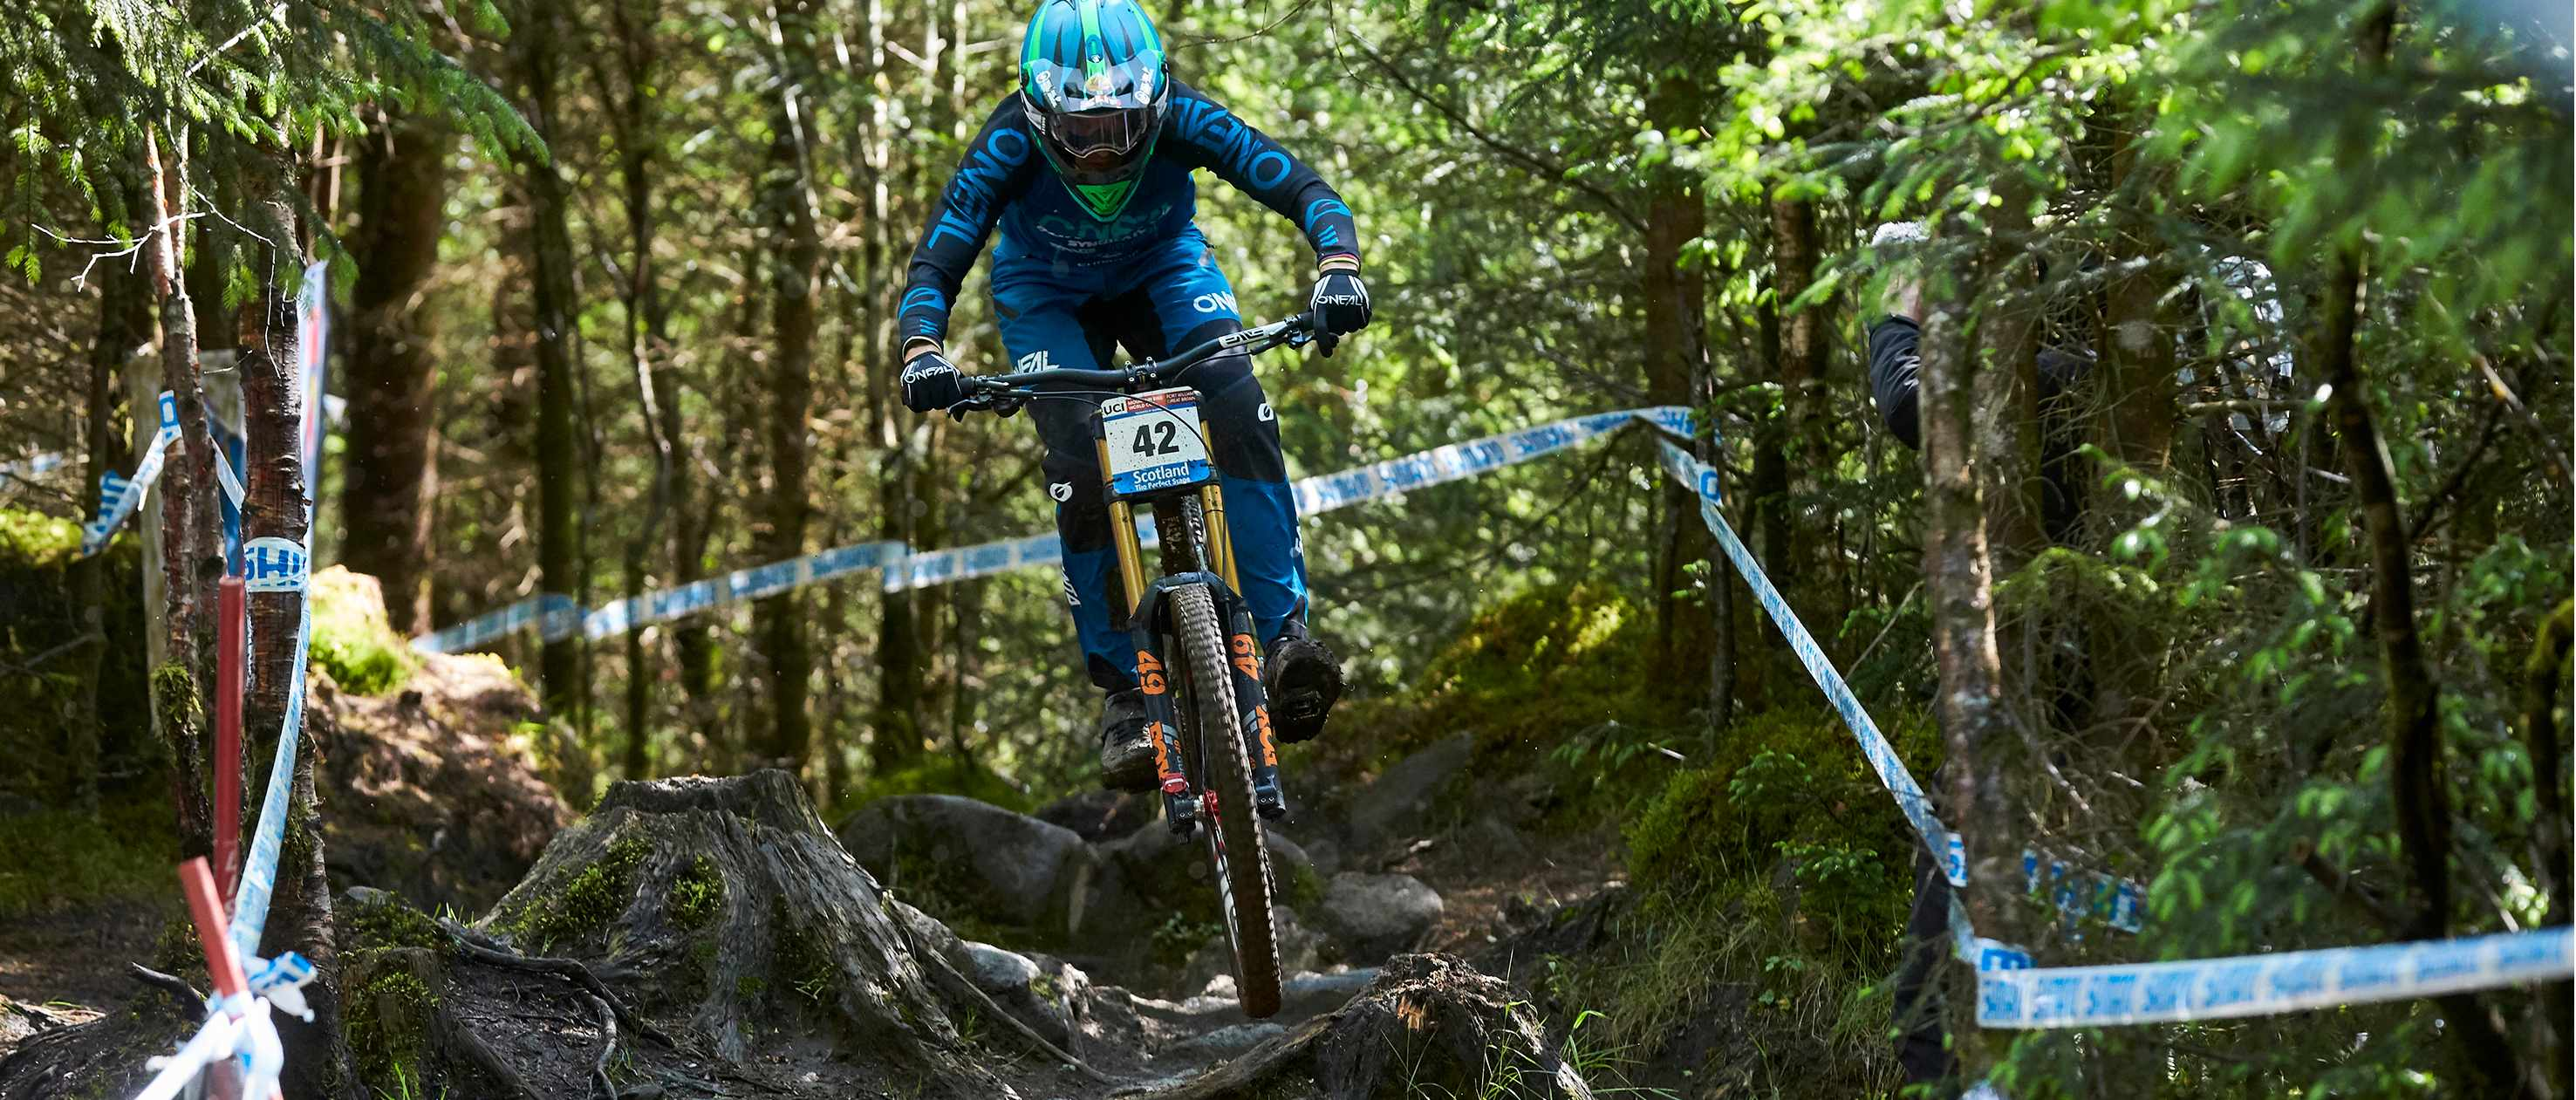 Greg Minnaar riding at Fort William